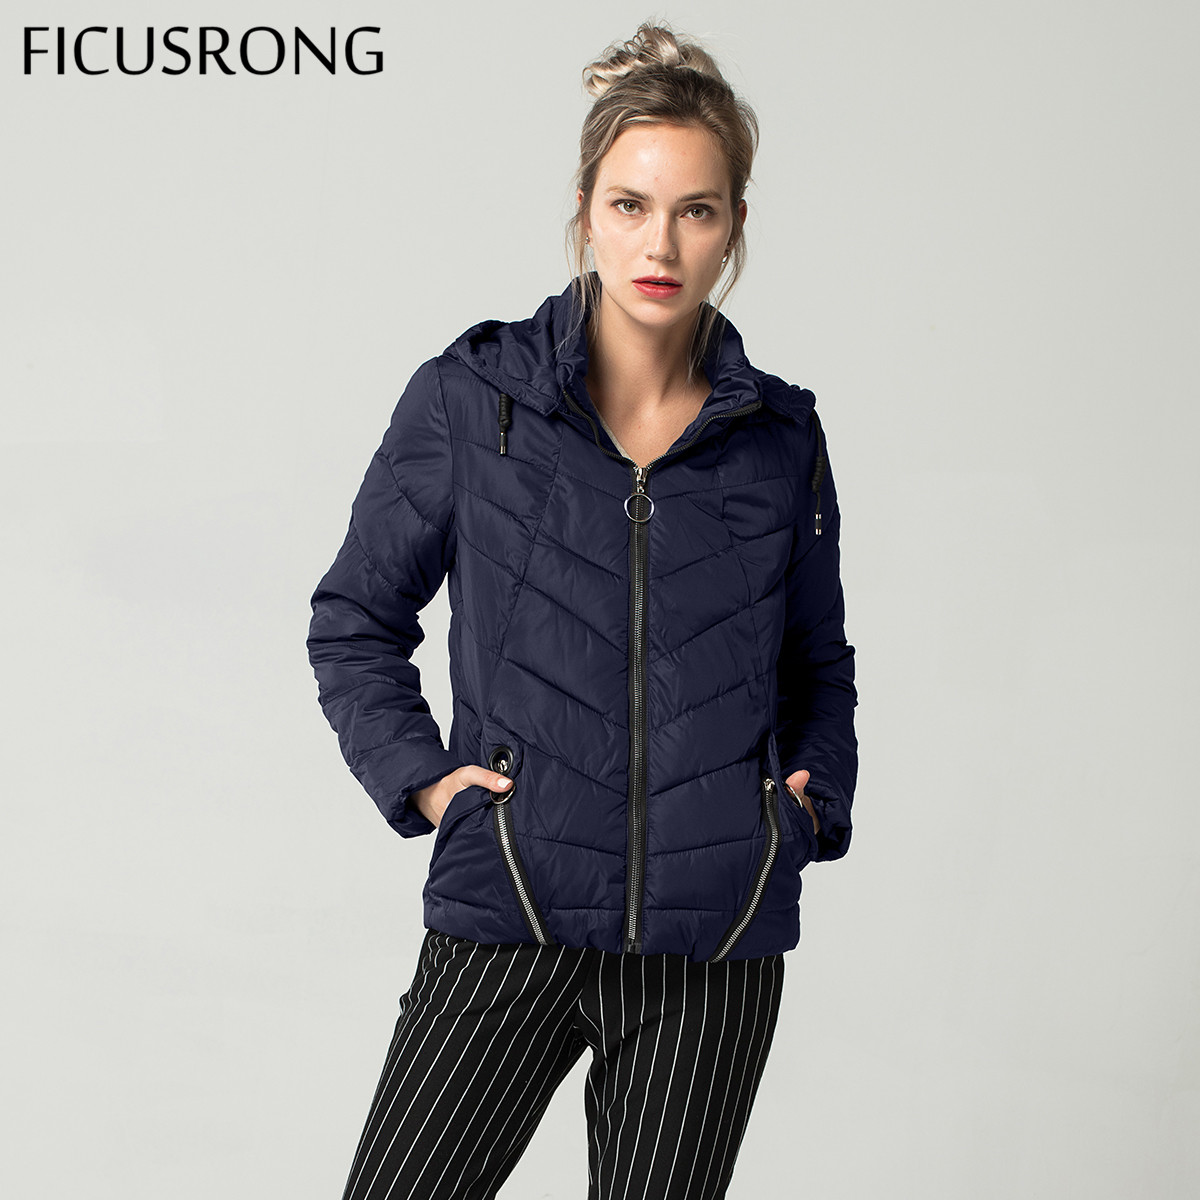 2019 Fashion Spring Jacket Women Down Parkas Outerwear Autumn Womens Hooded Coats Slim Cotton Padded Jacket Female FICUSRONG